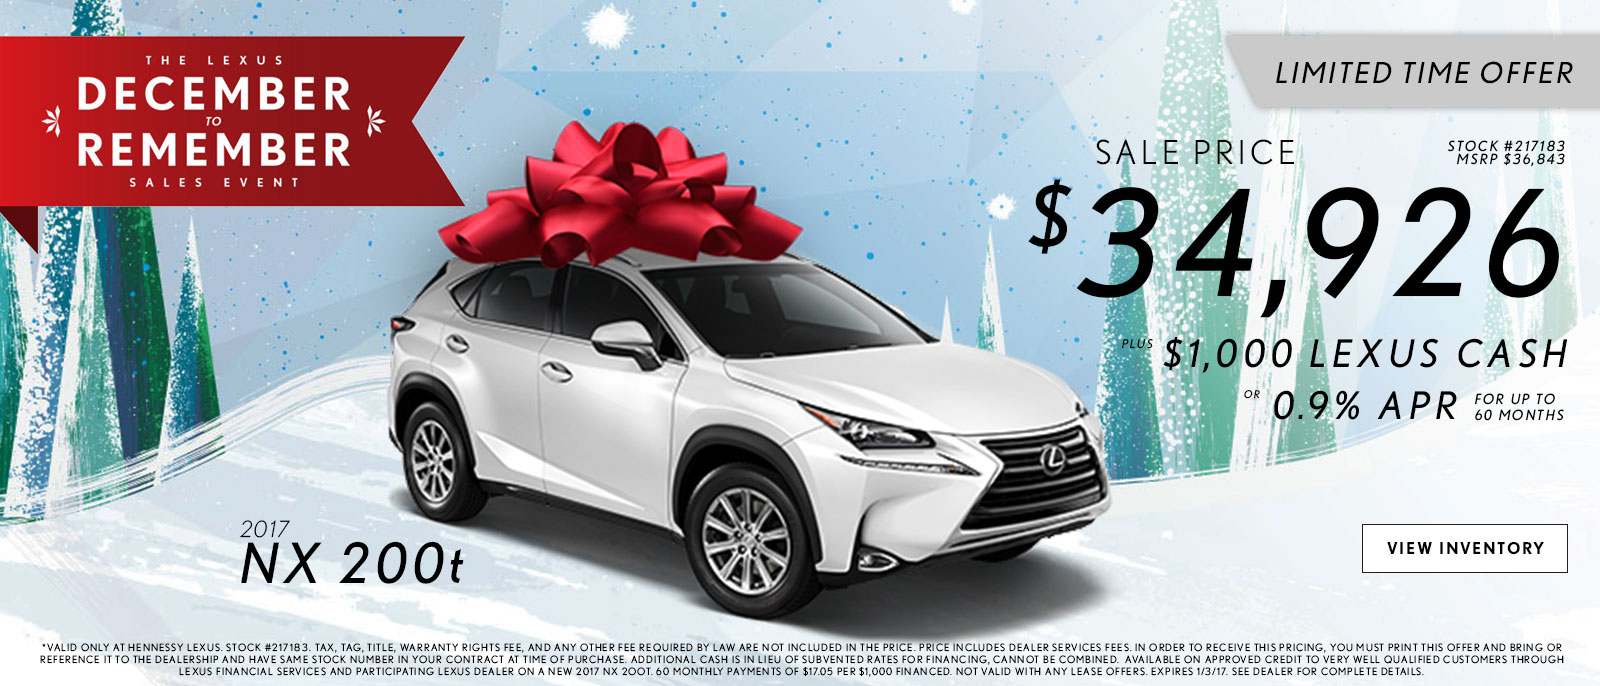 Lexus December to Remember NX Offers